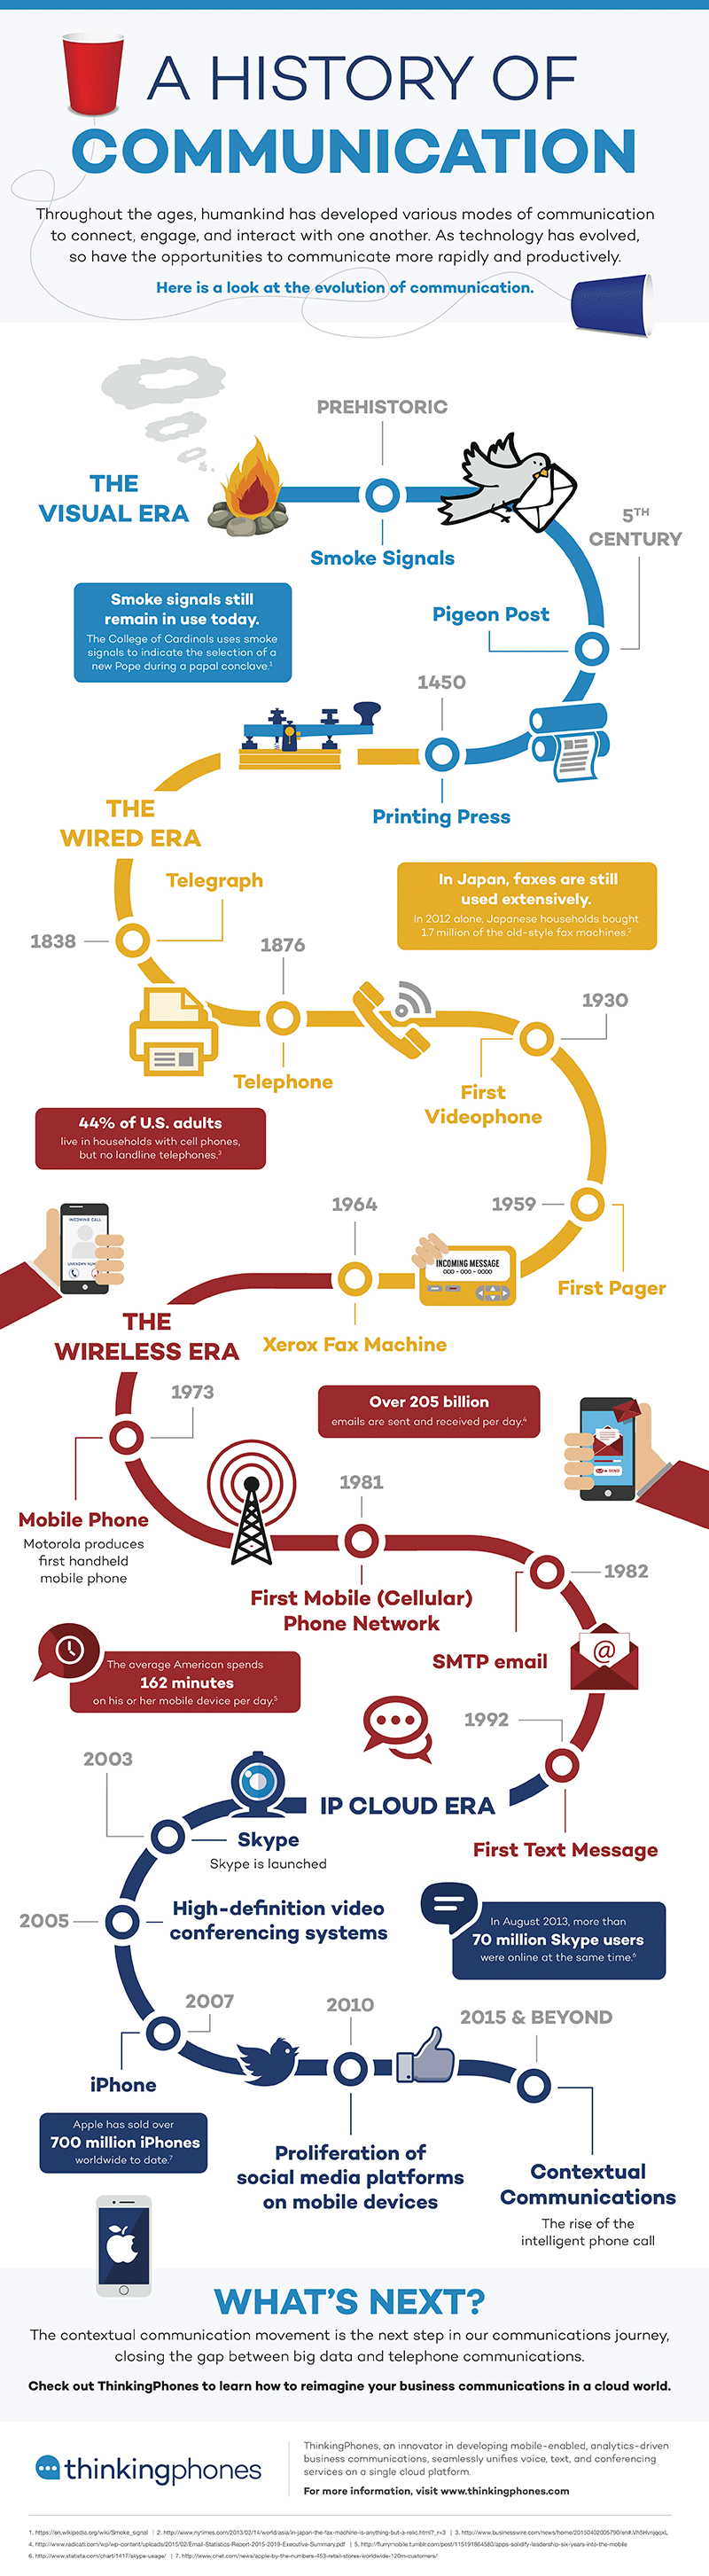 A History of Communication